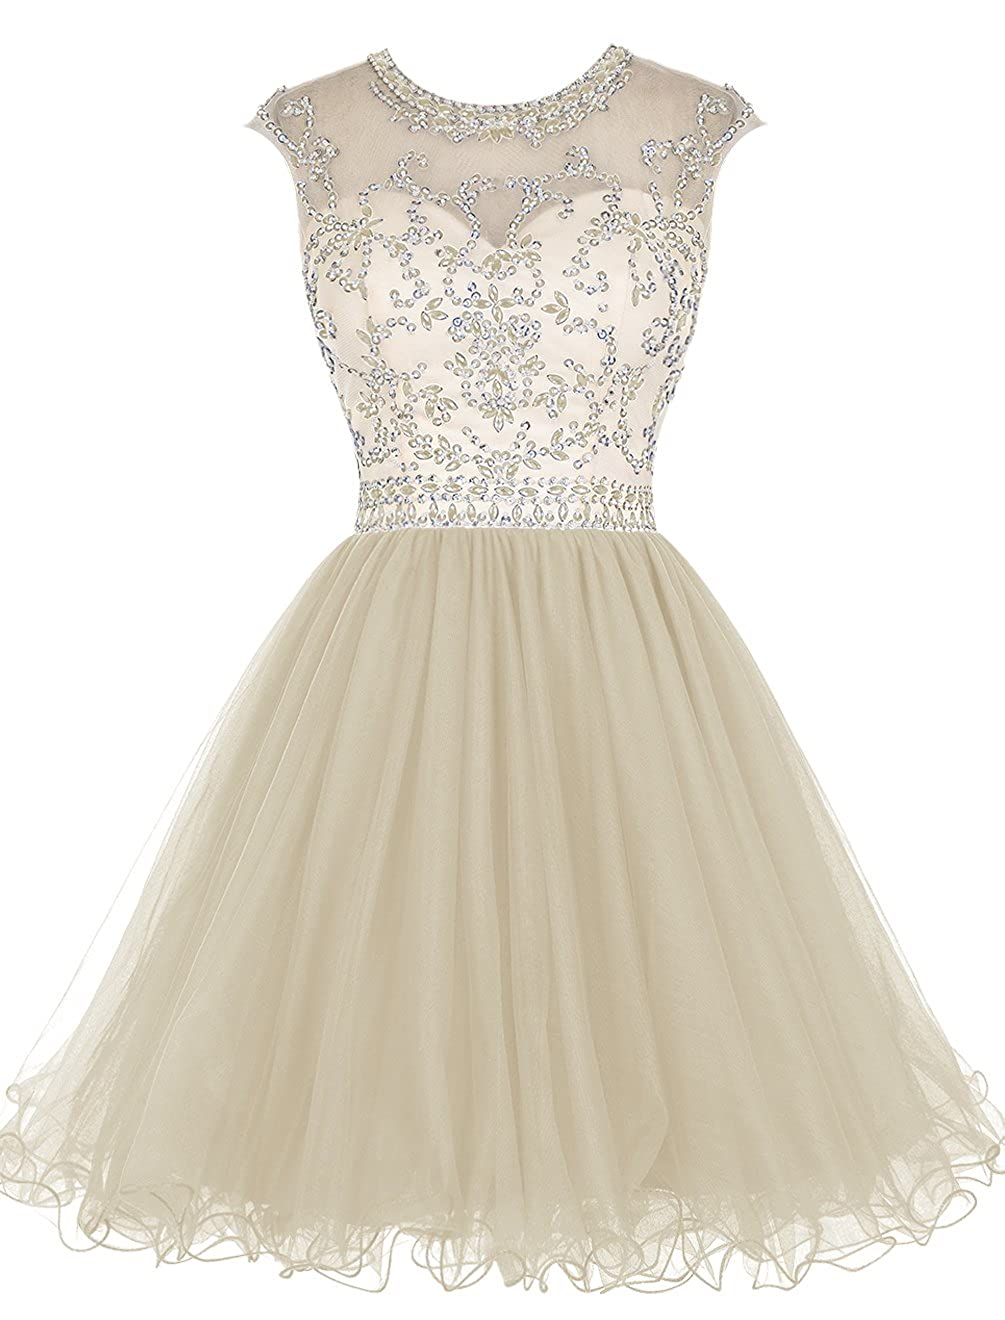 Champagne TideClothes Short Beading Homecoming Dresses Tulle Prom Cocktail Party Gowns